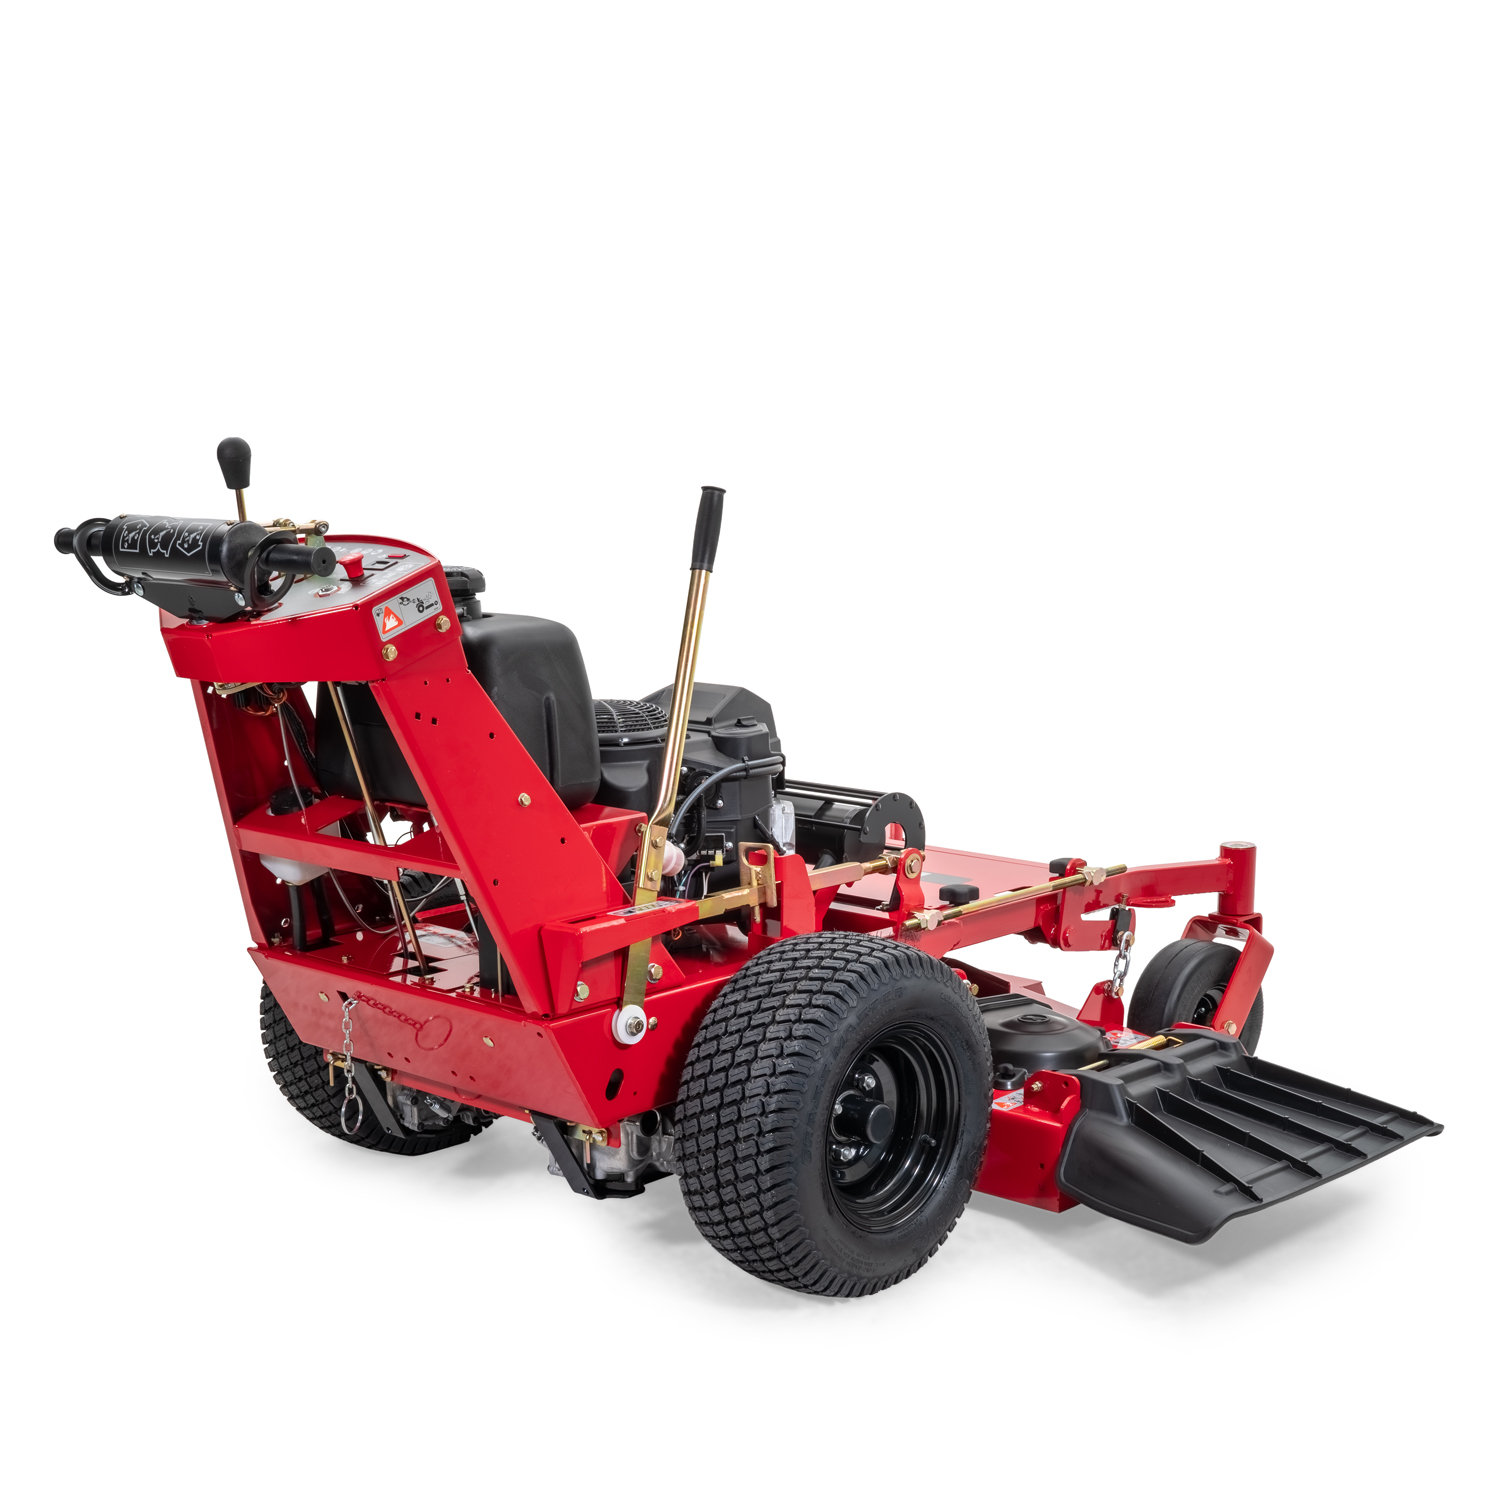 Image of the rear three quarters of a red walk-behind mower